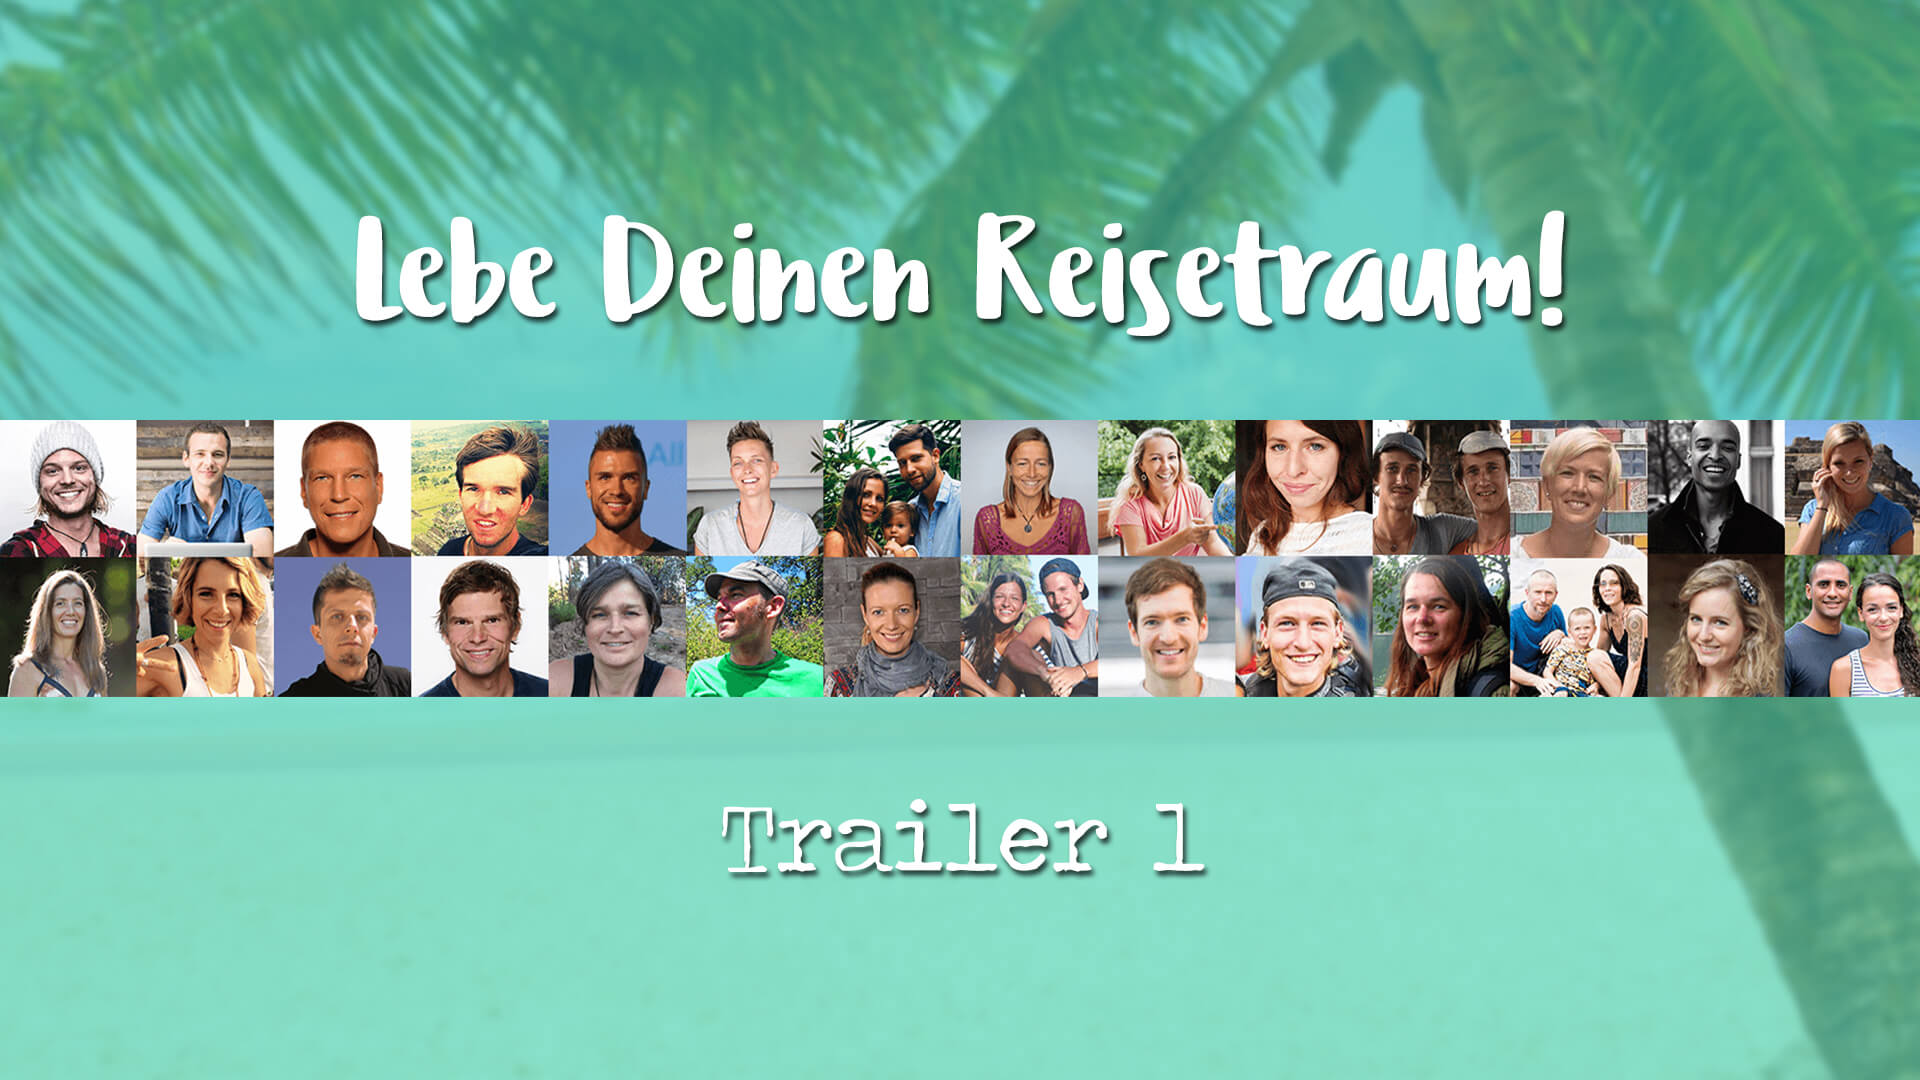 Trailer 1 - Link zur Video-Plattform Vimeo